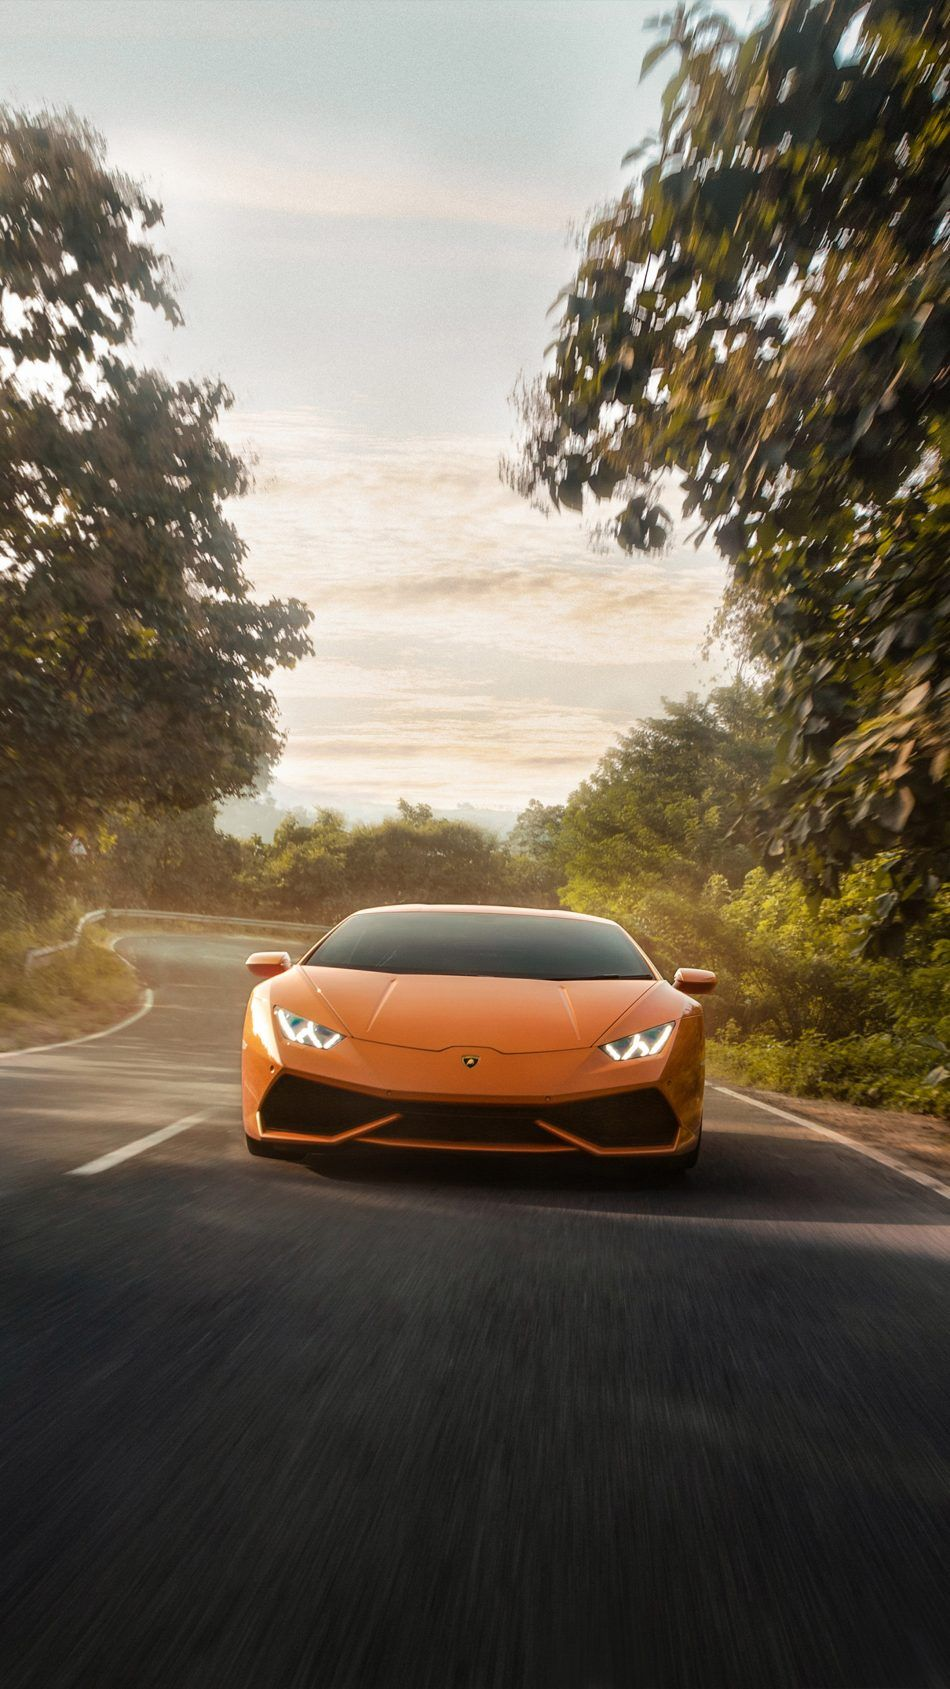 Lamborghini Huracan On Road Lamborghini Cars Car Wallpapers Lamborghini Huracan Orange